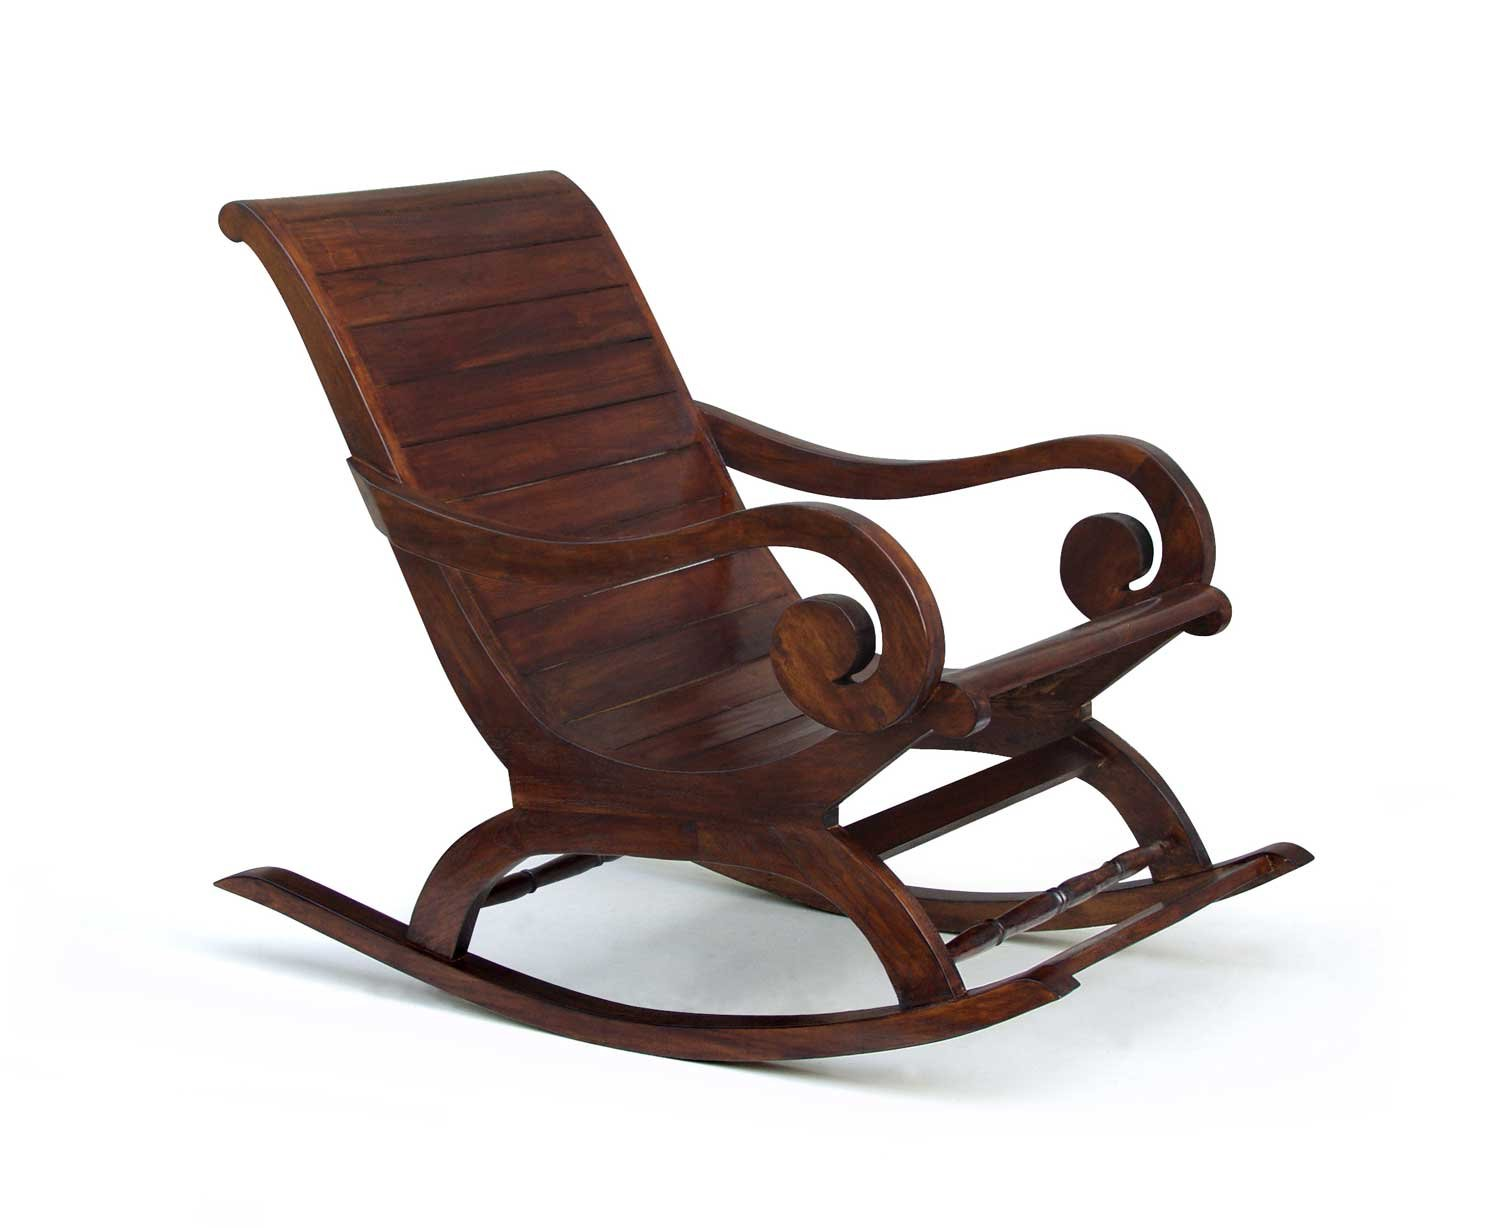 Charmant Jati Antiqued Lazy Plantation Rocking Chair Brand, Quality U0026 Value:  Amazon.co.uk: Garden U0026 Outdoors